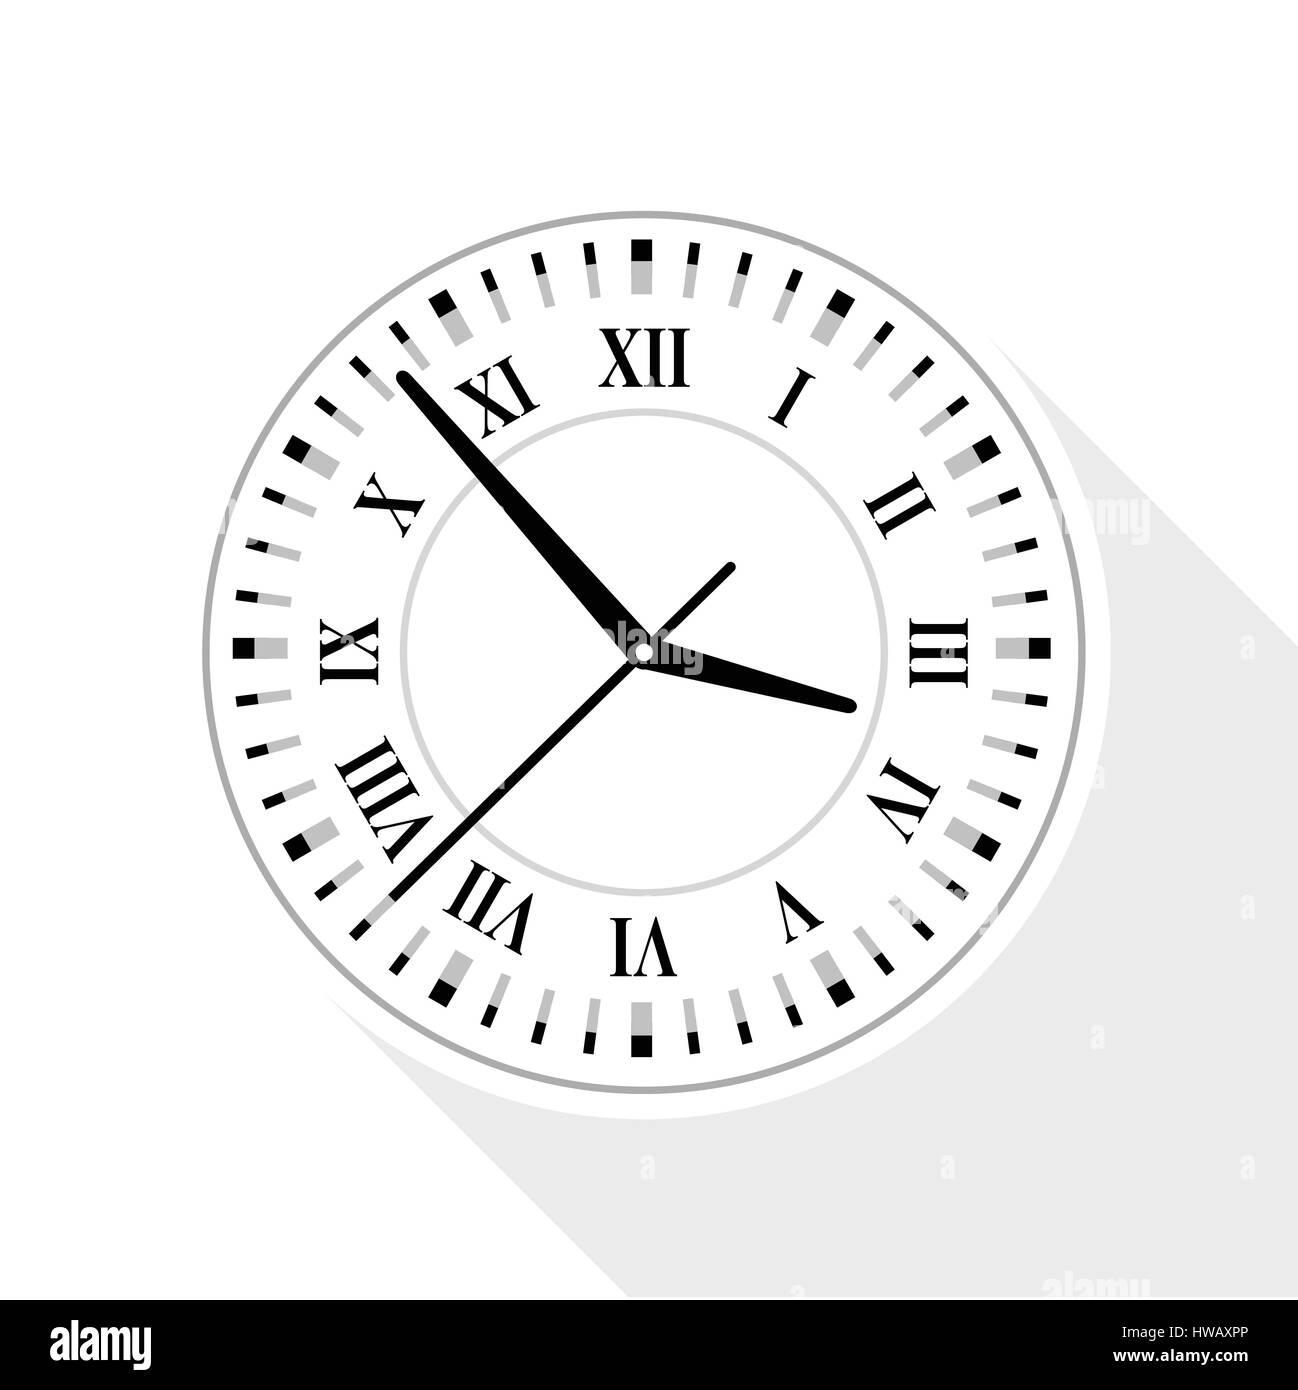 Wall clock with roman numerals icon flat style stock vector art stock vector wall clock with roman numerals icon flat style amipublicfo Choice Image